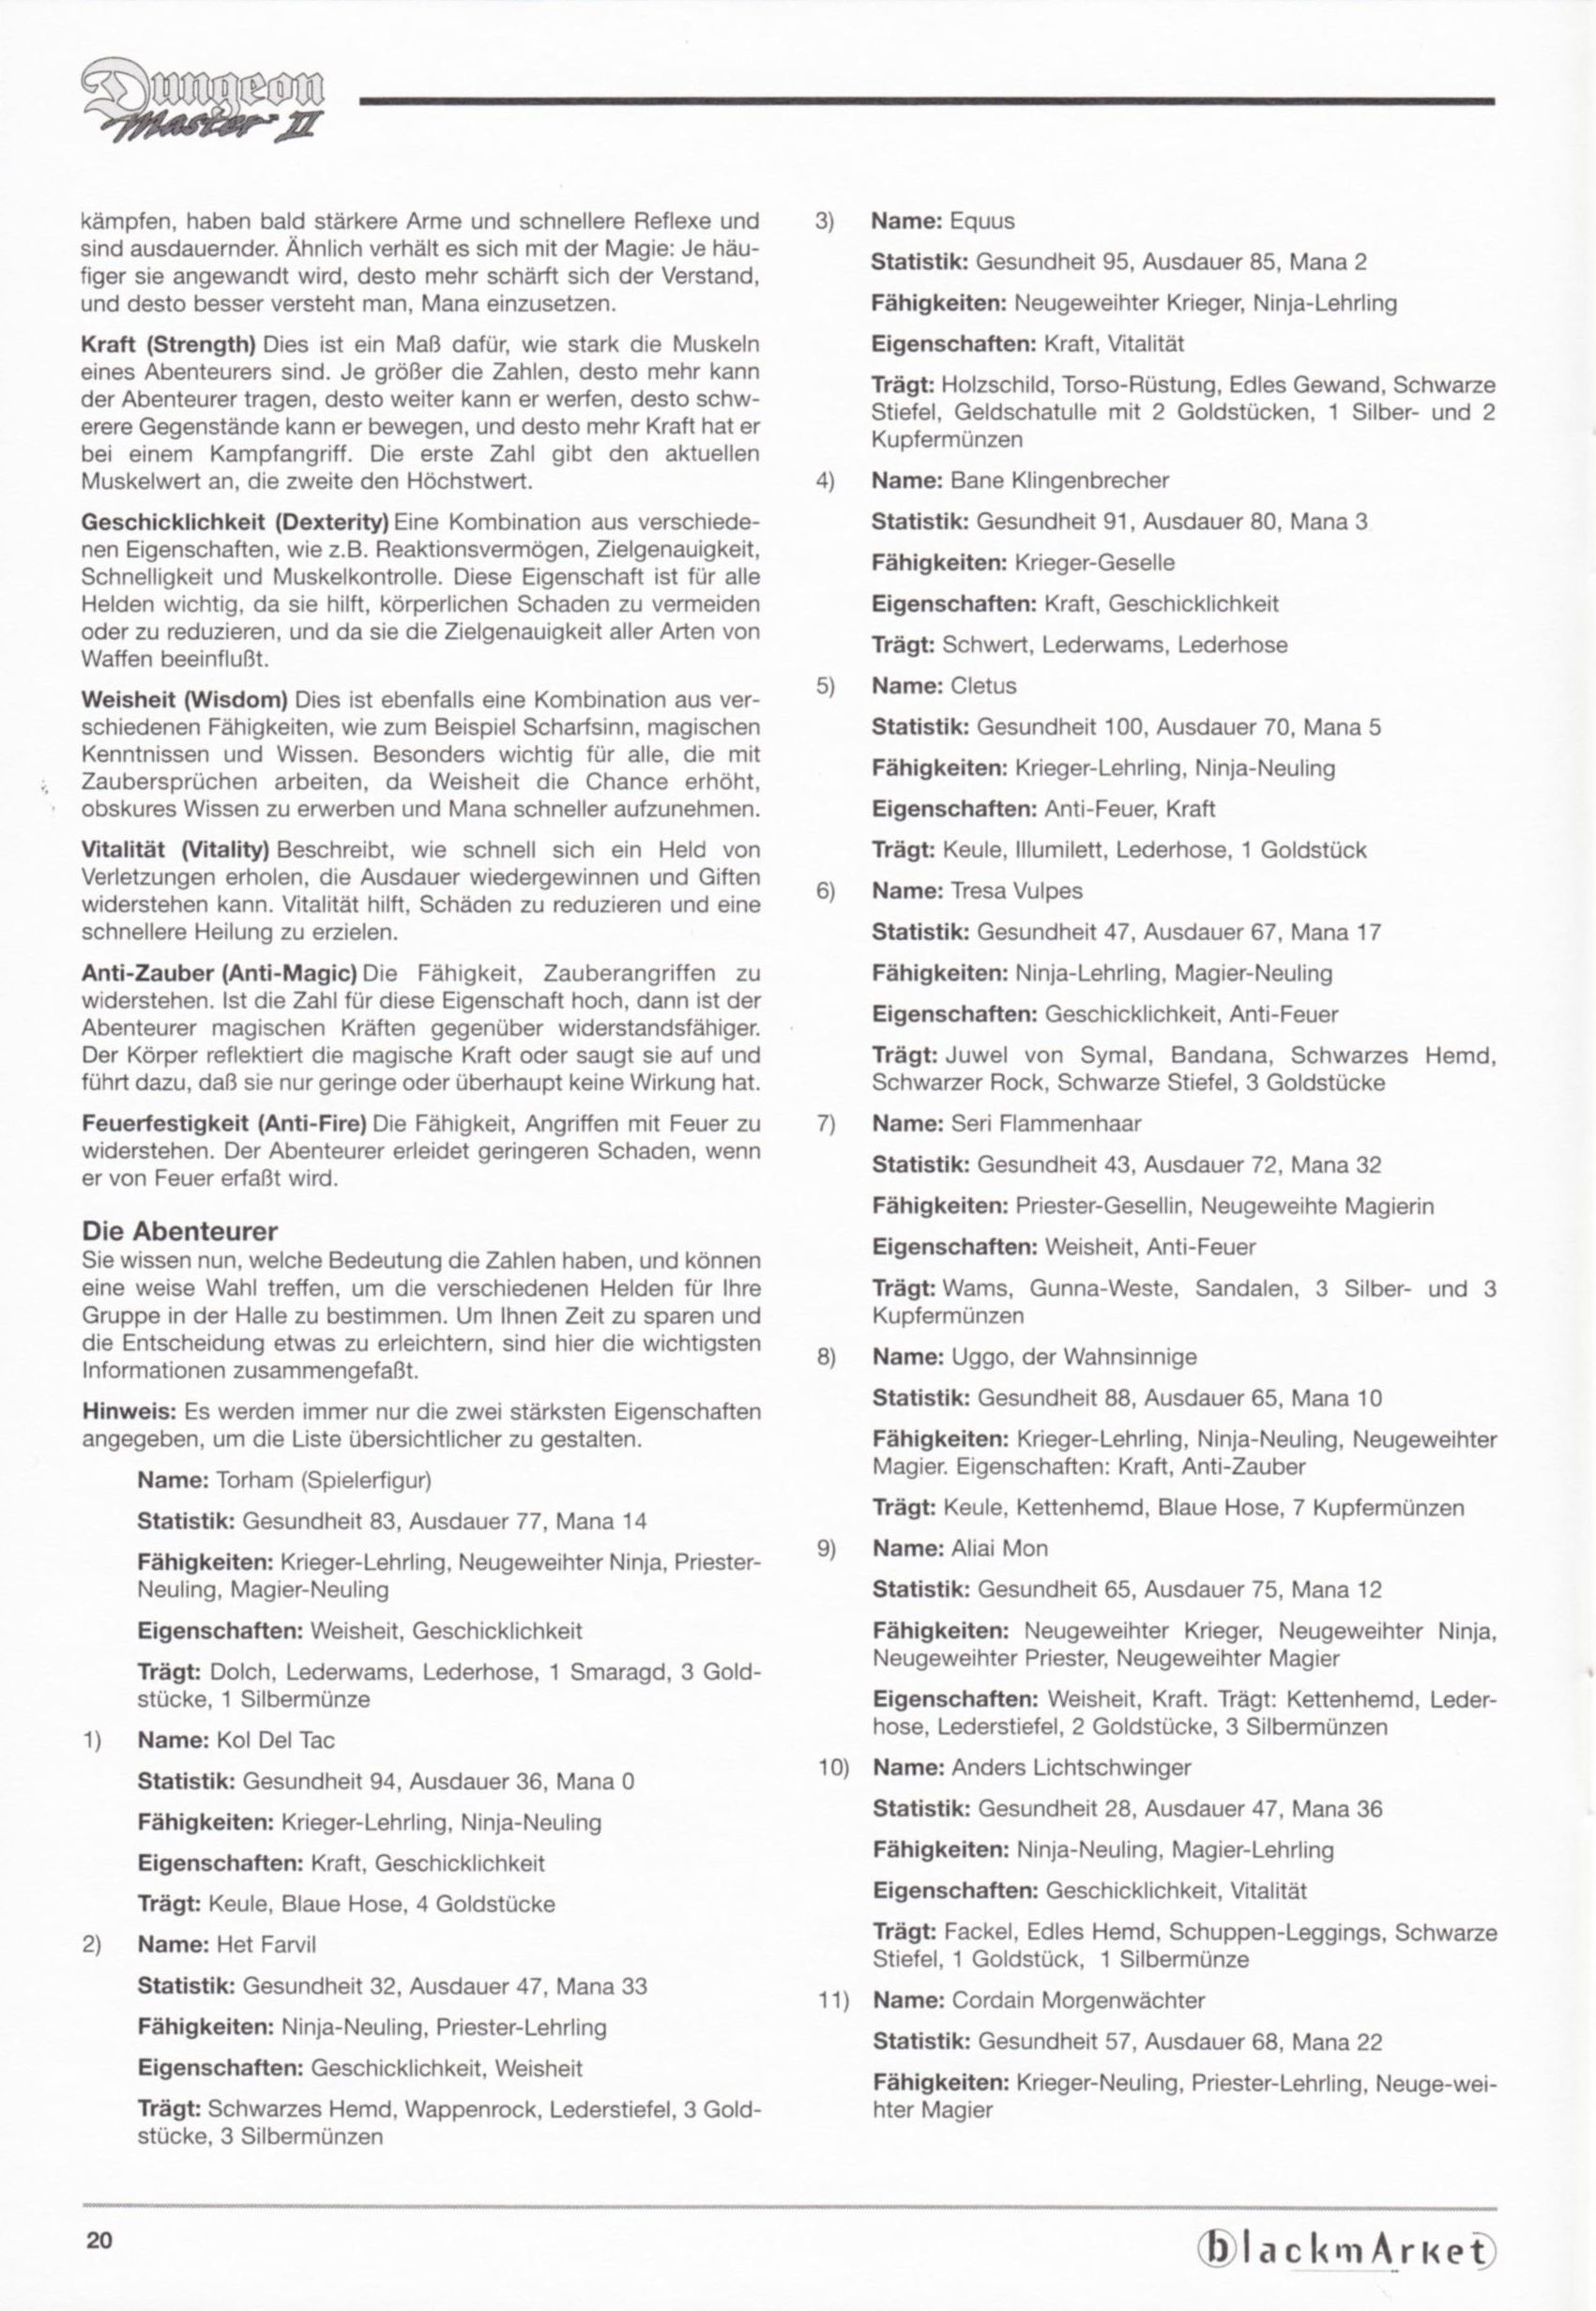 Game - Dungeon Master II - DE - PC - Blackmarket With Manual - Manual - Page 022 - Scan